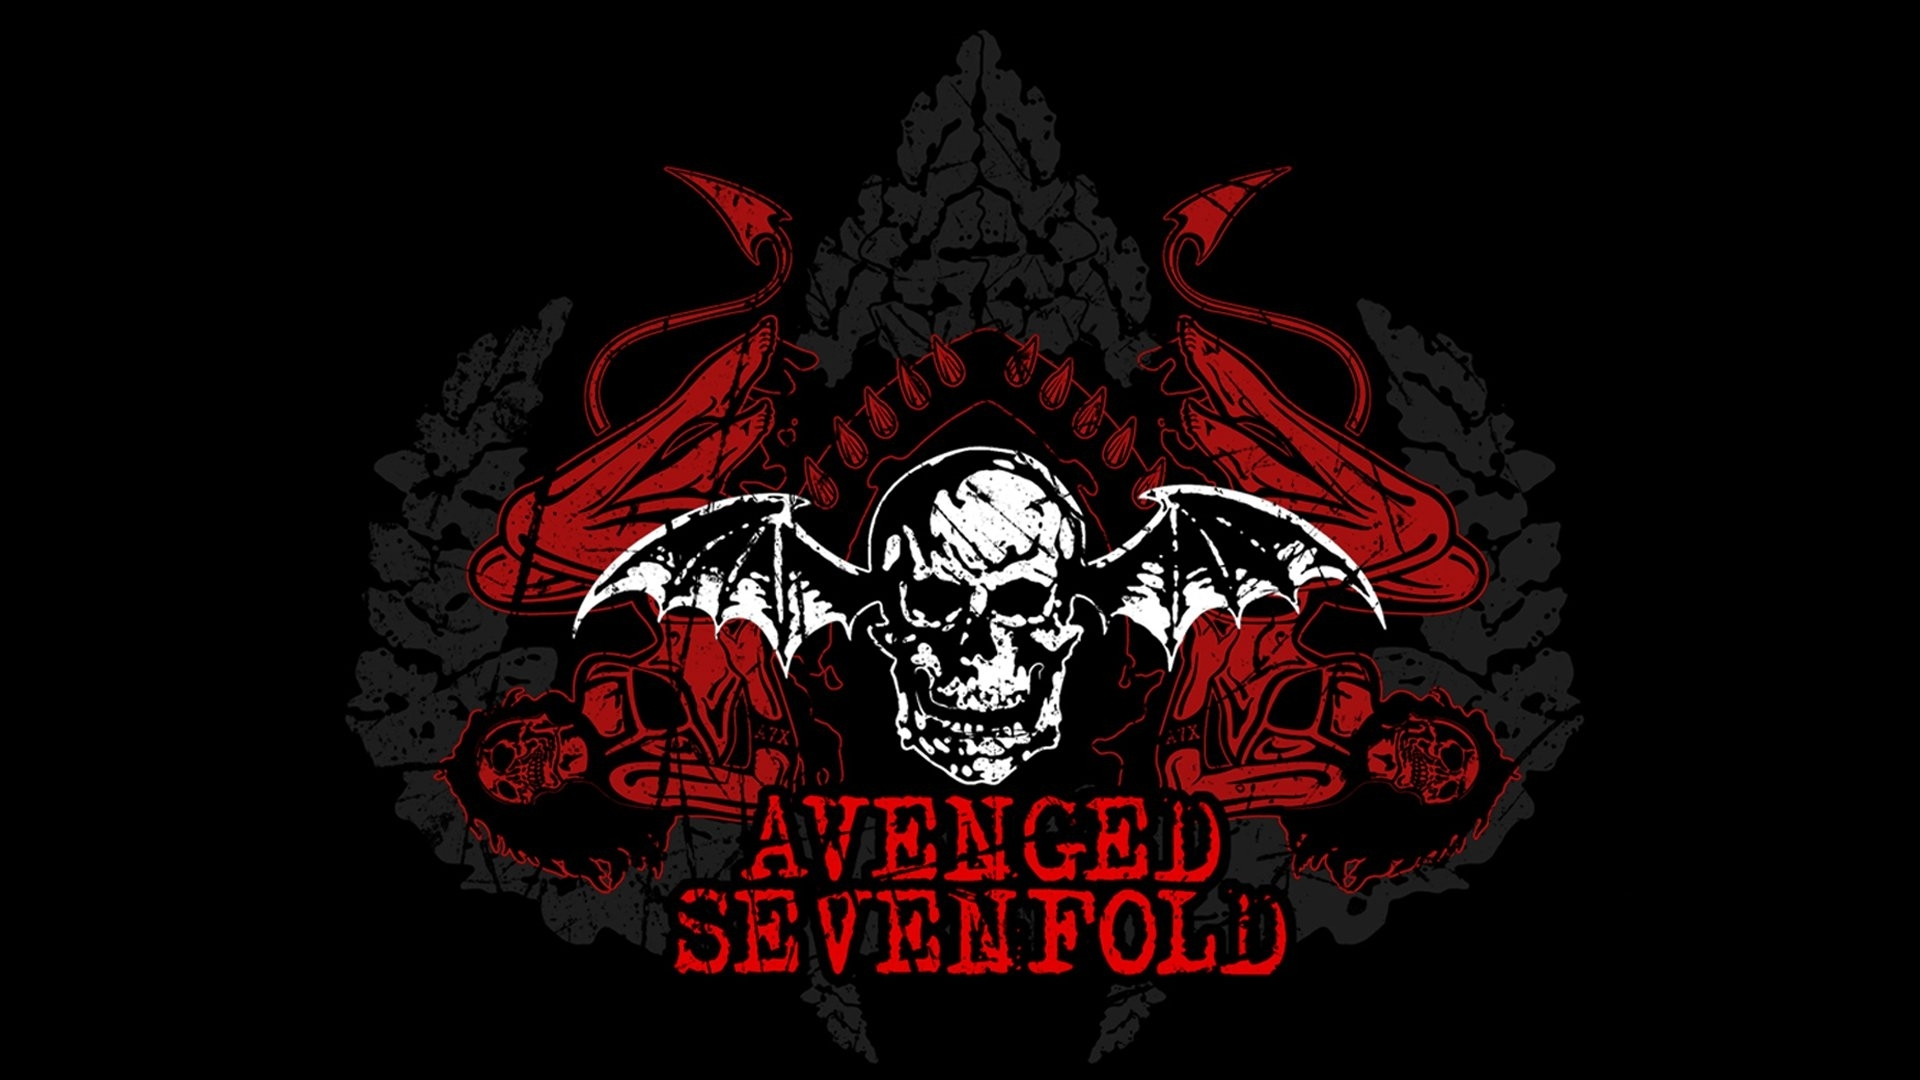 28 avenged sevenfold hd wallpapers | background images - wallpaper abyss